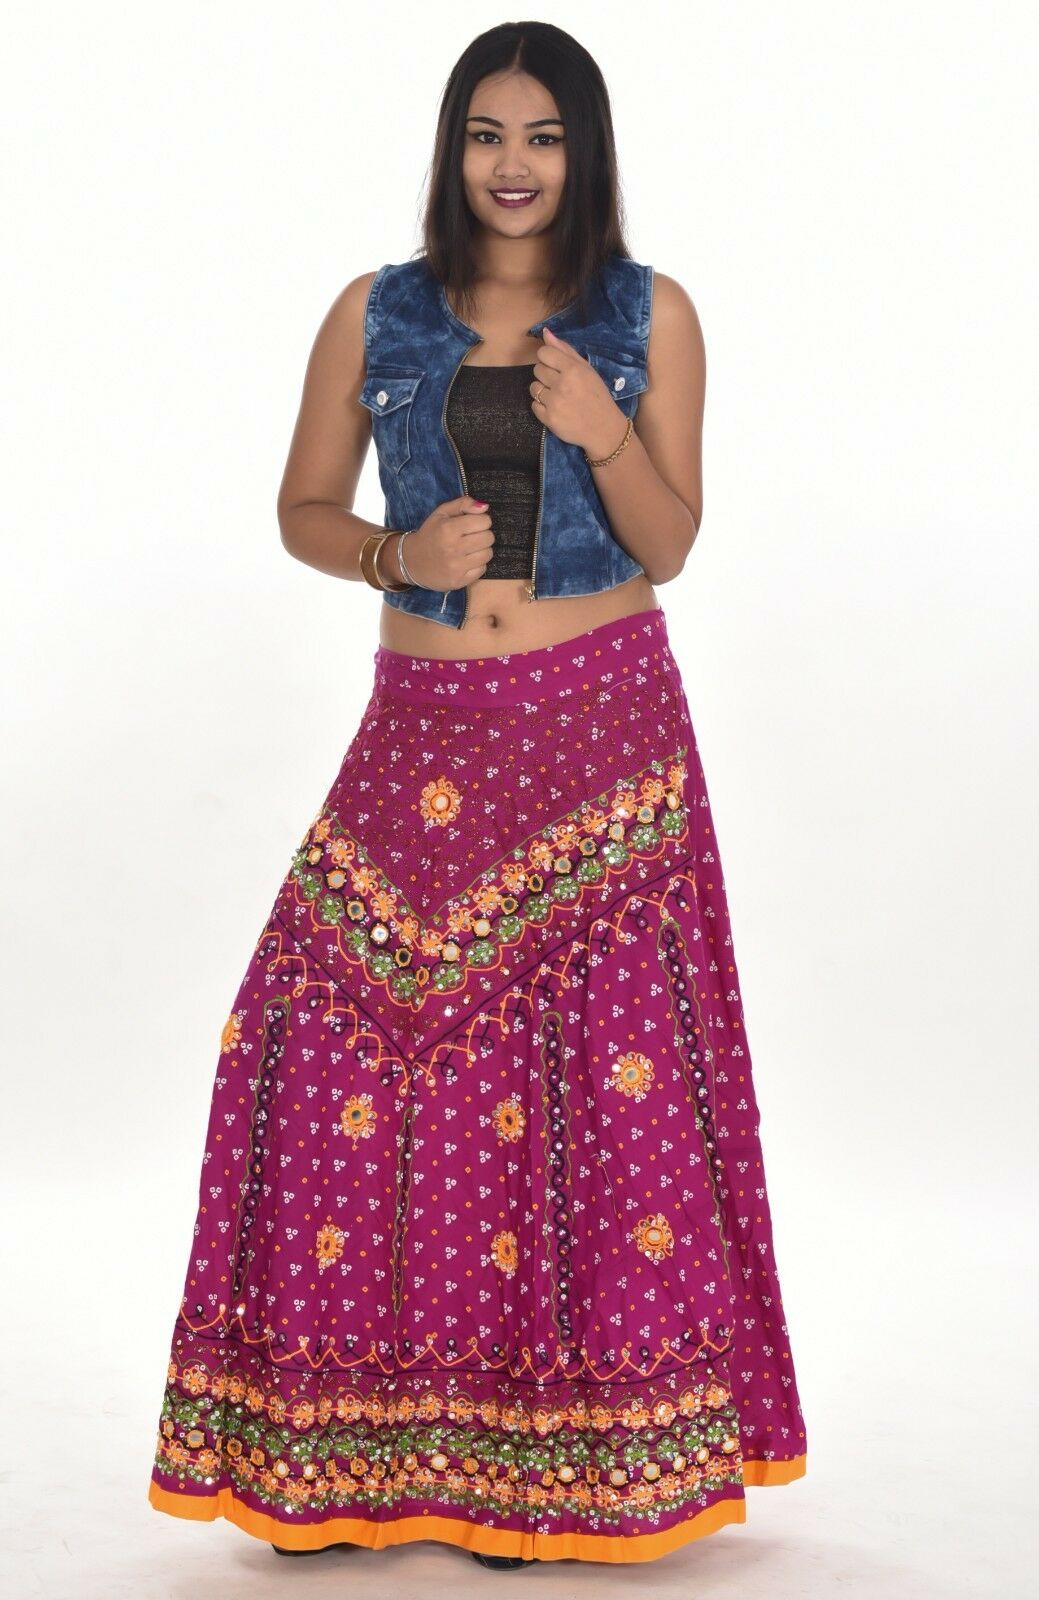 Indian 100% Cotton Women's Long Skirt Hippie Pink color Plus Size Embroidered